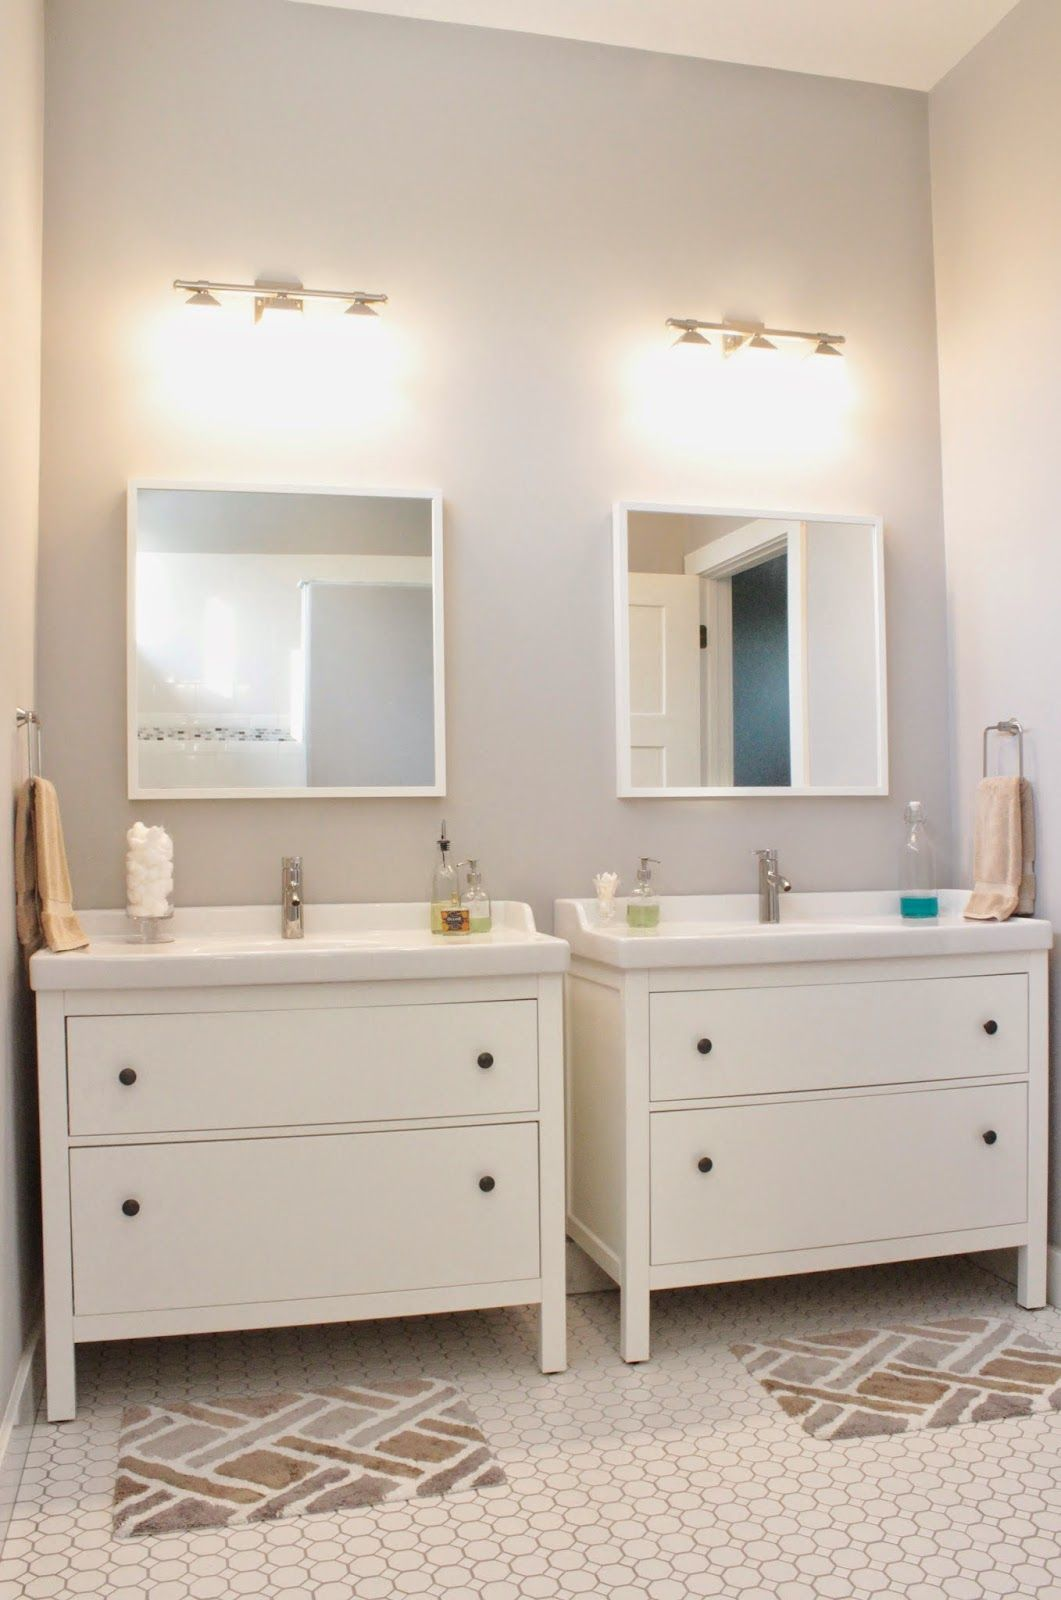 Side By Side Hemnes Sink Cabinets For Girls Or Double